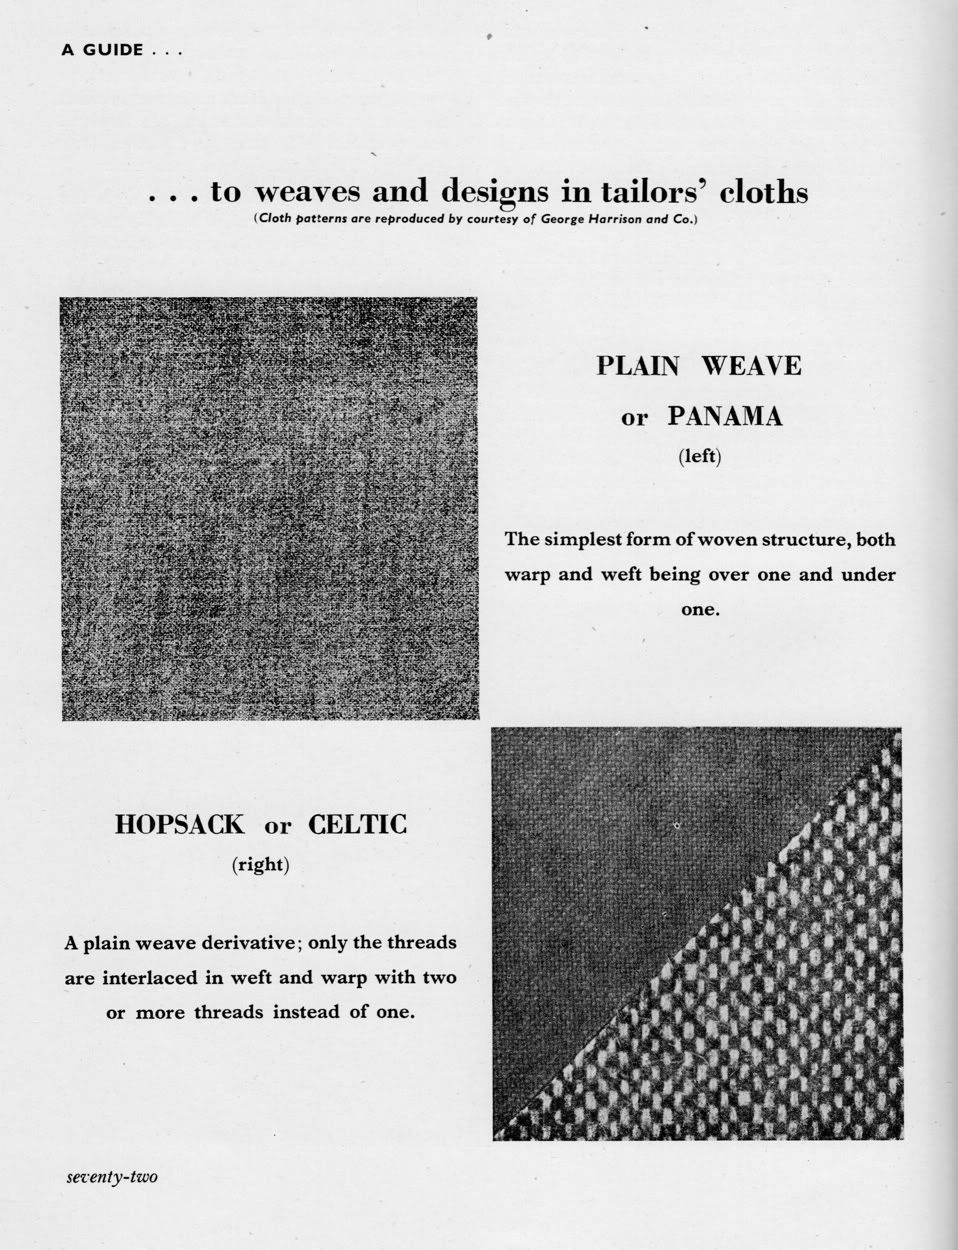 Basic Patterns and Weaves, one of many vintage suit cloth explanations from Put This On